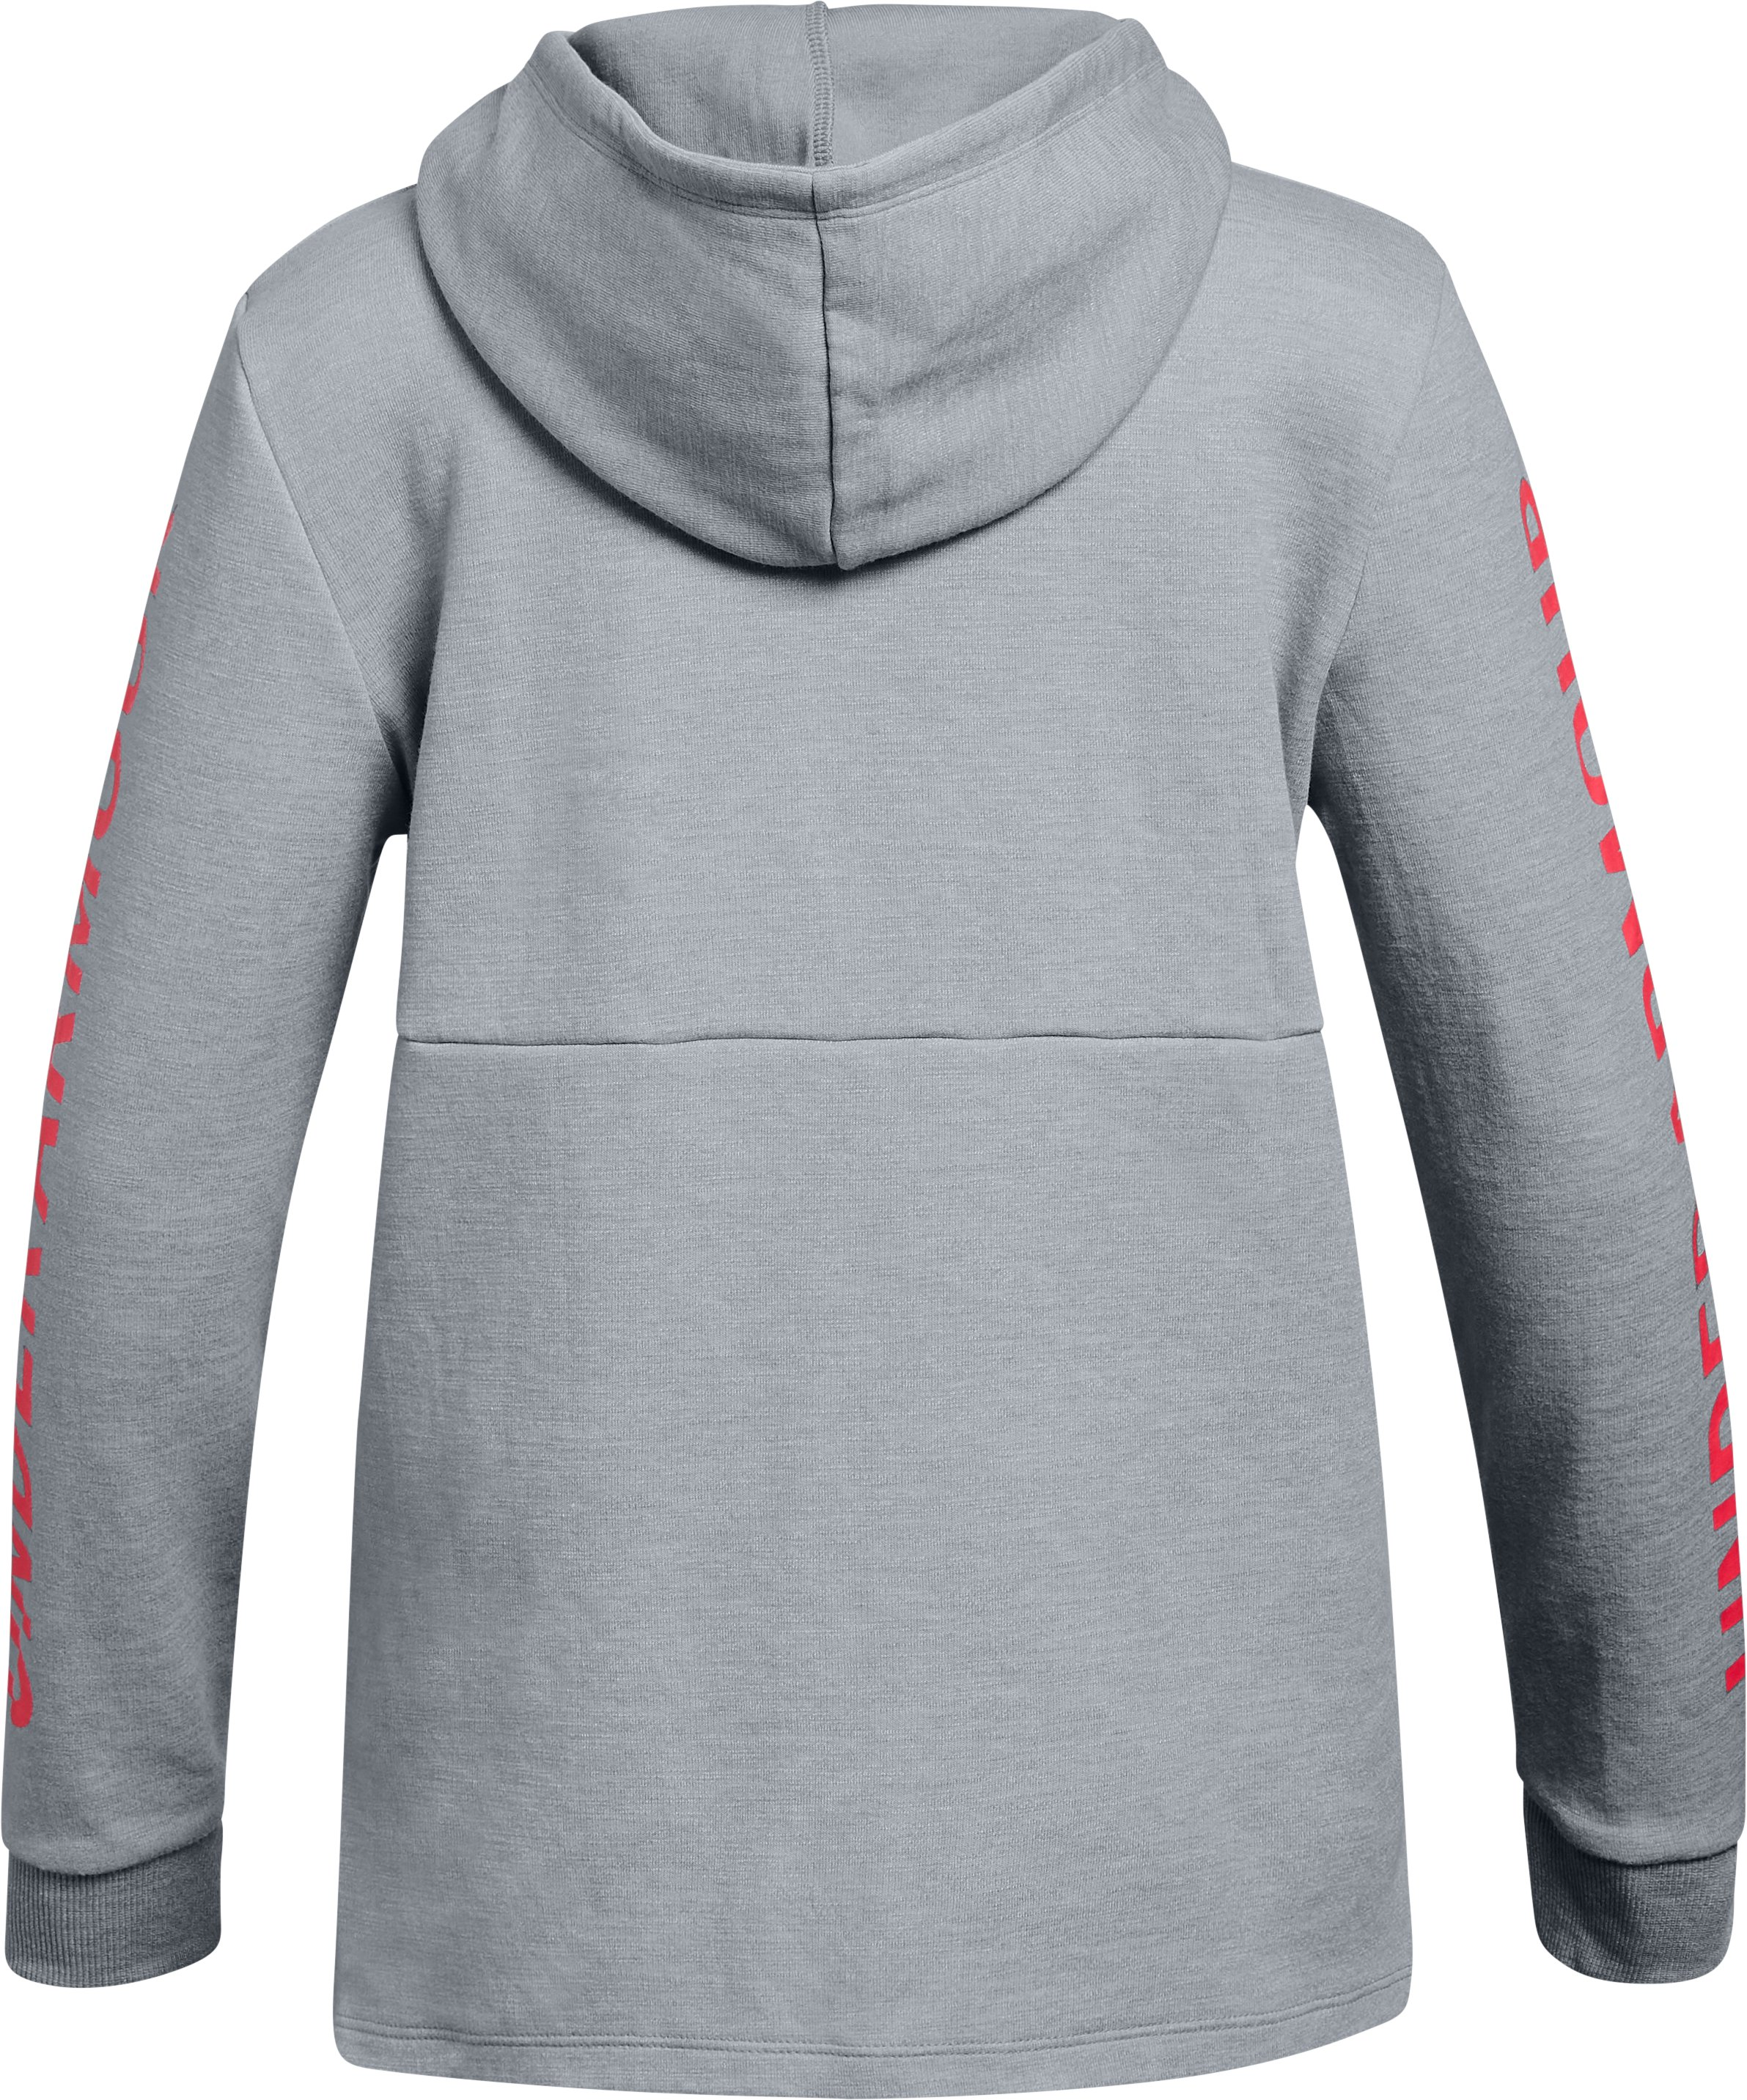 Girls' UA Double Knit Hoodie, STEEL LIGHT HEATHER,